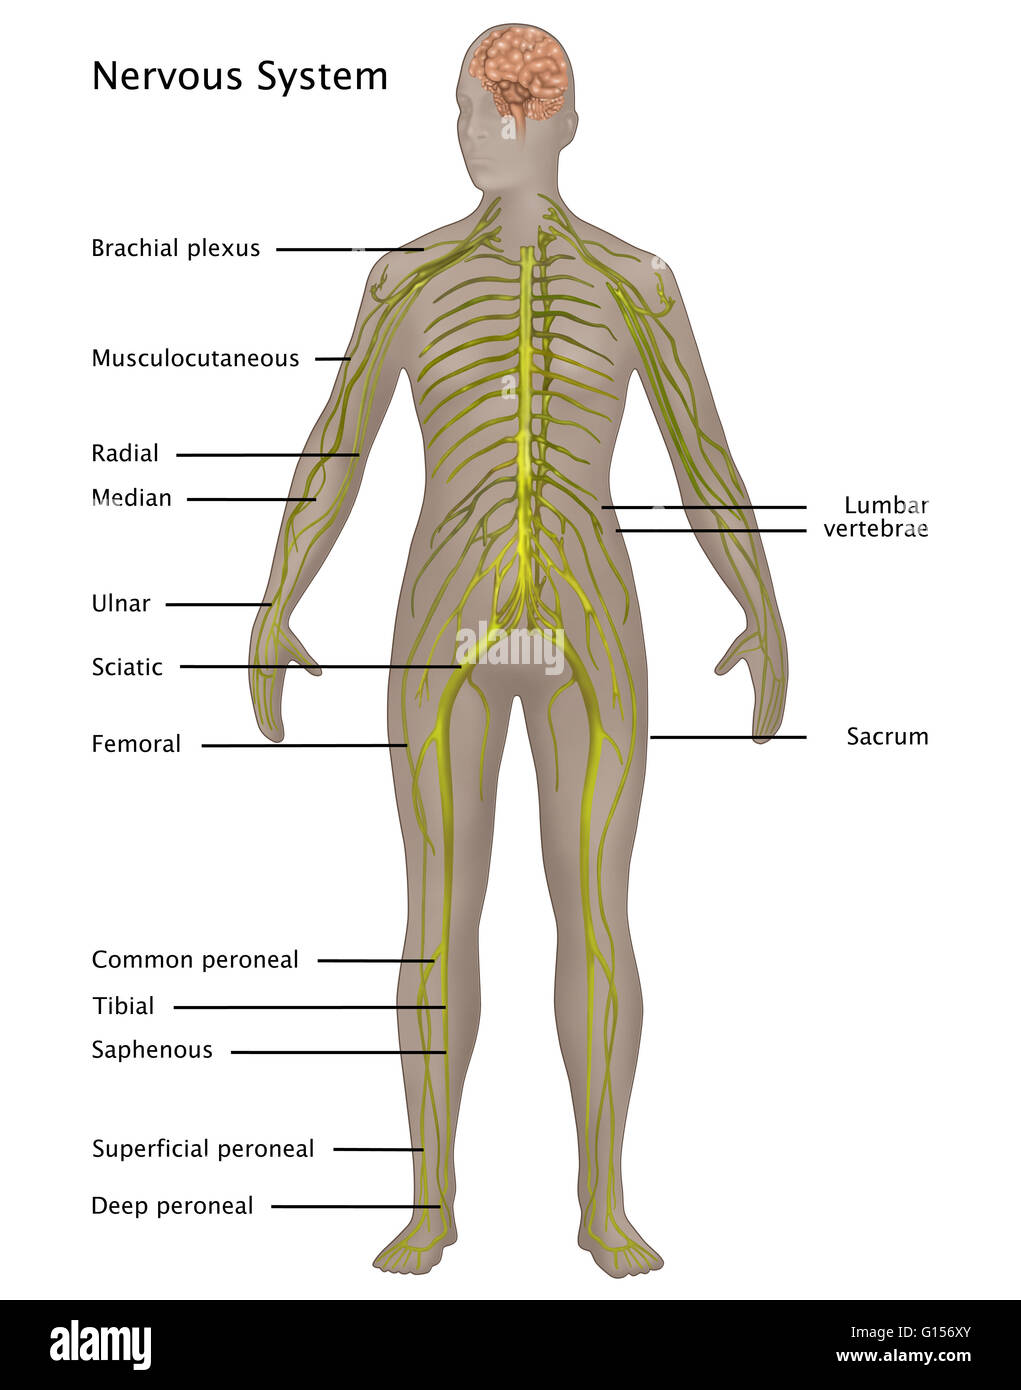 Illustration of the nervous system in the female anatomy labeled illustration of the nervous system in the female anatomy labeled nerves from top to bottom ccuart Choice Image